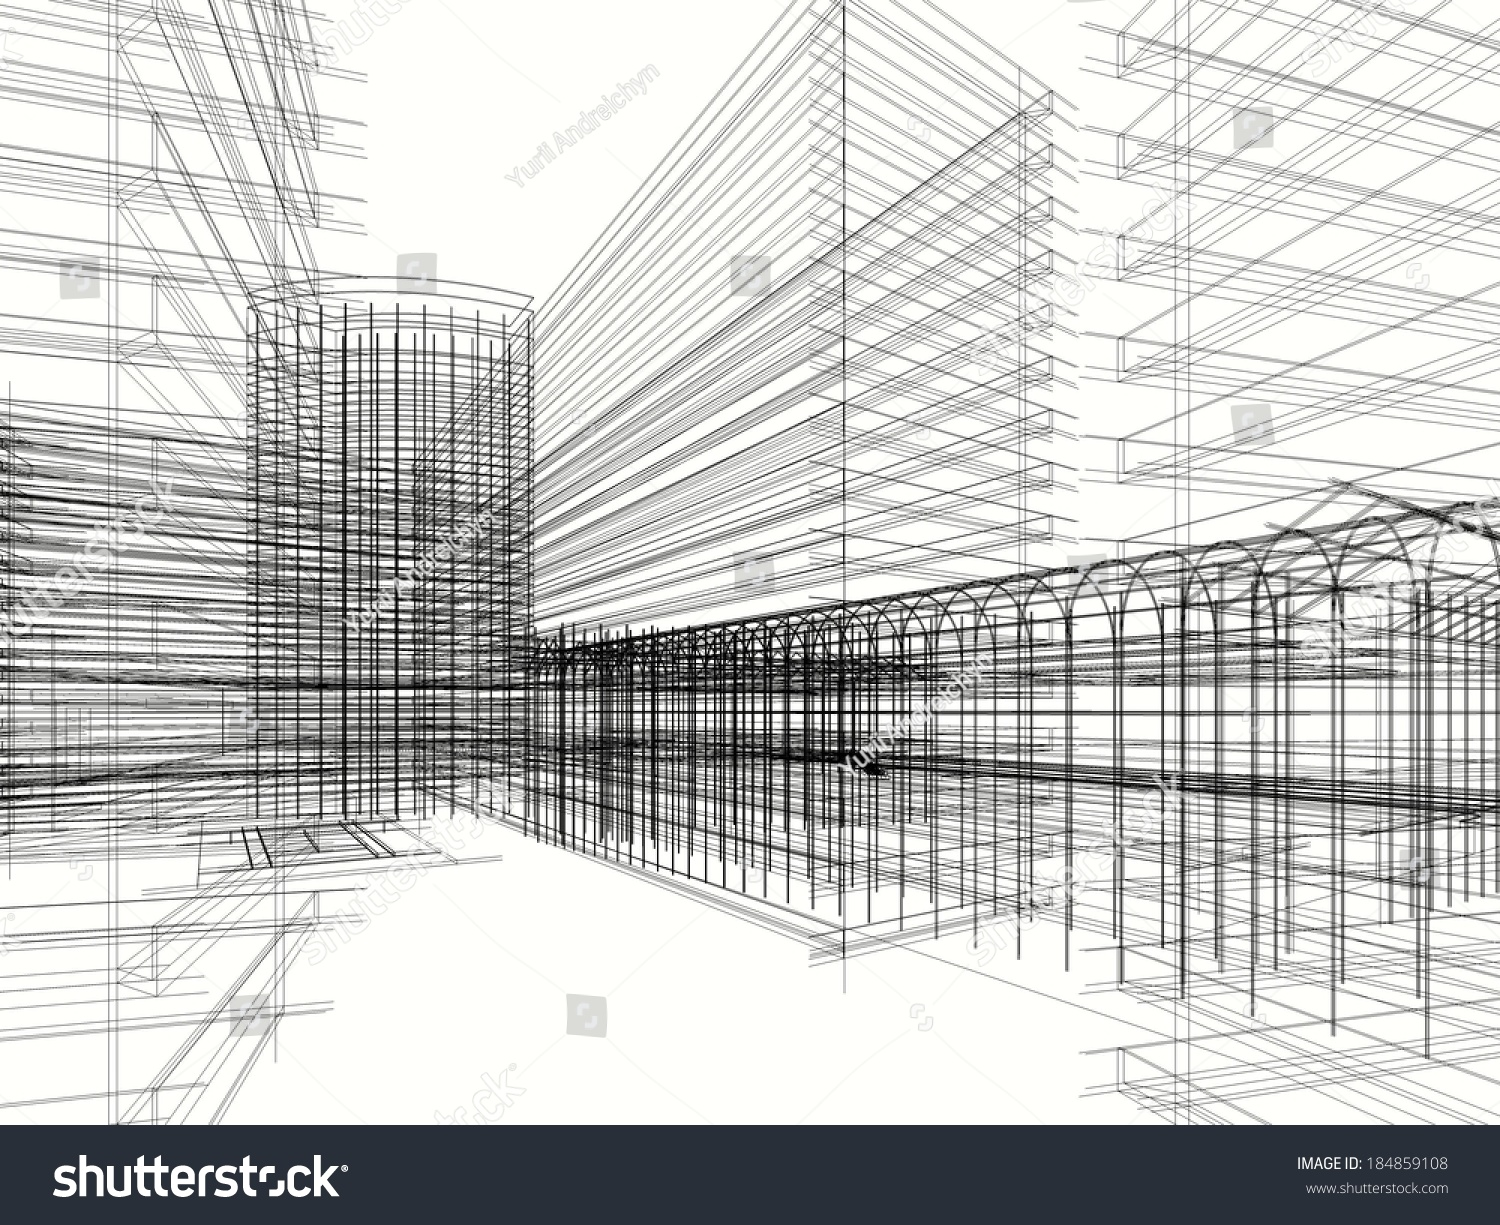 Abstract Architecture Design Wallpaper Architectural Drawings